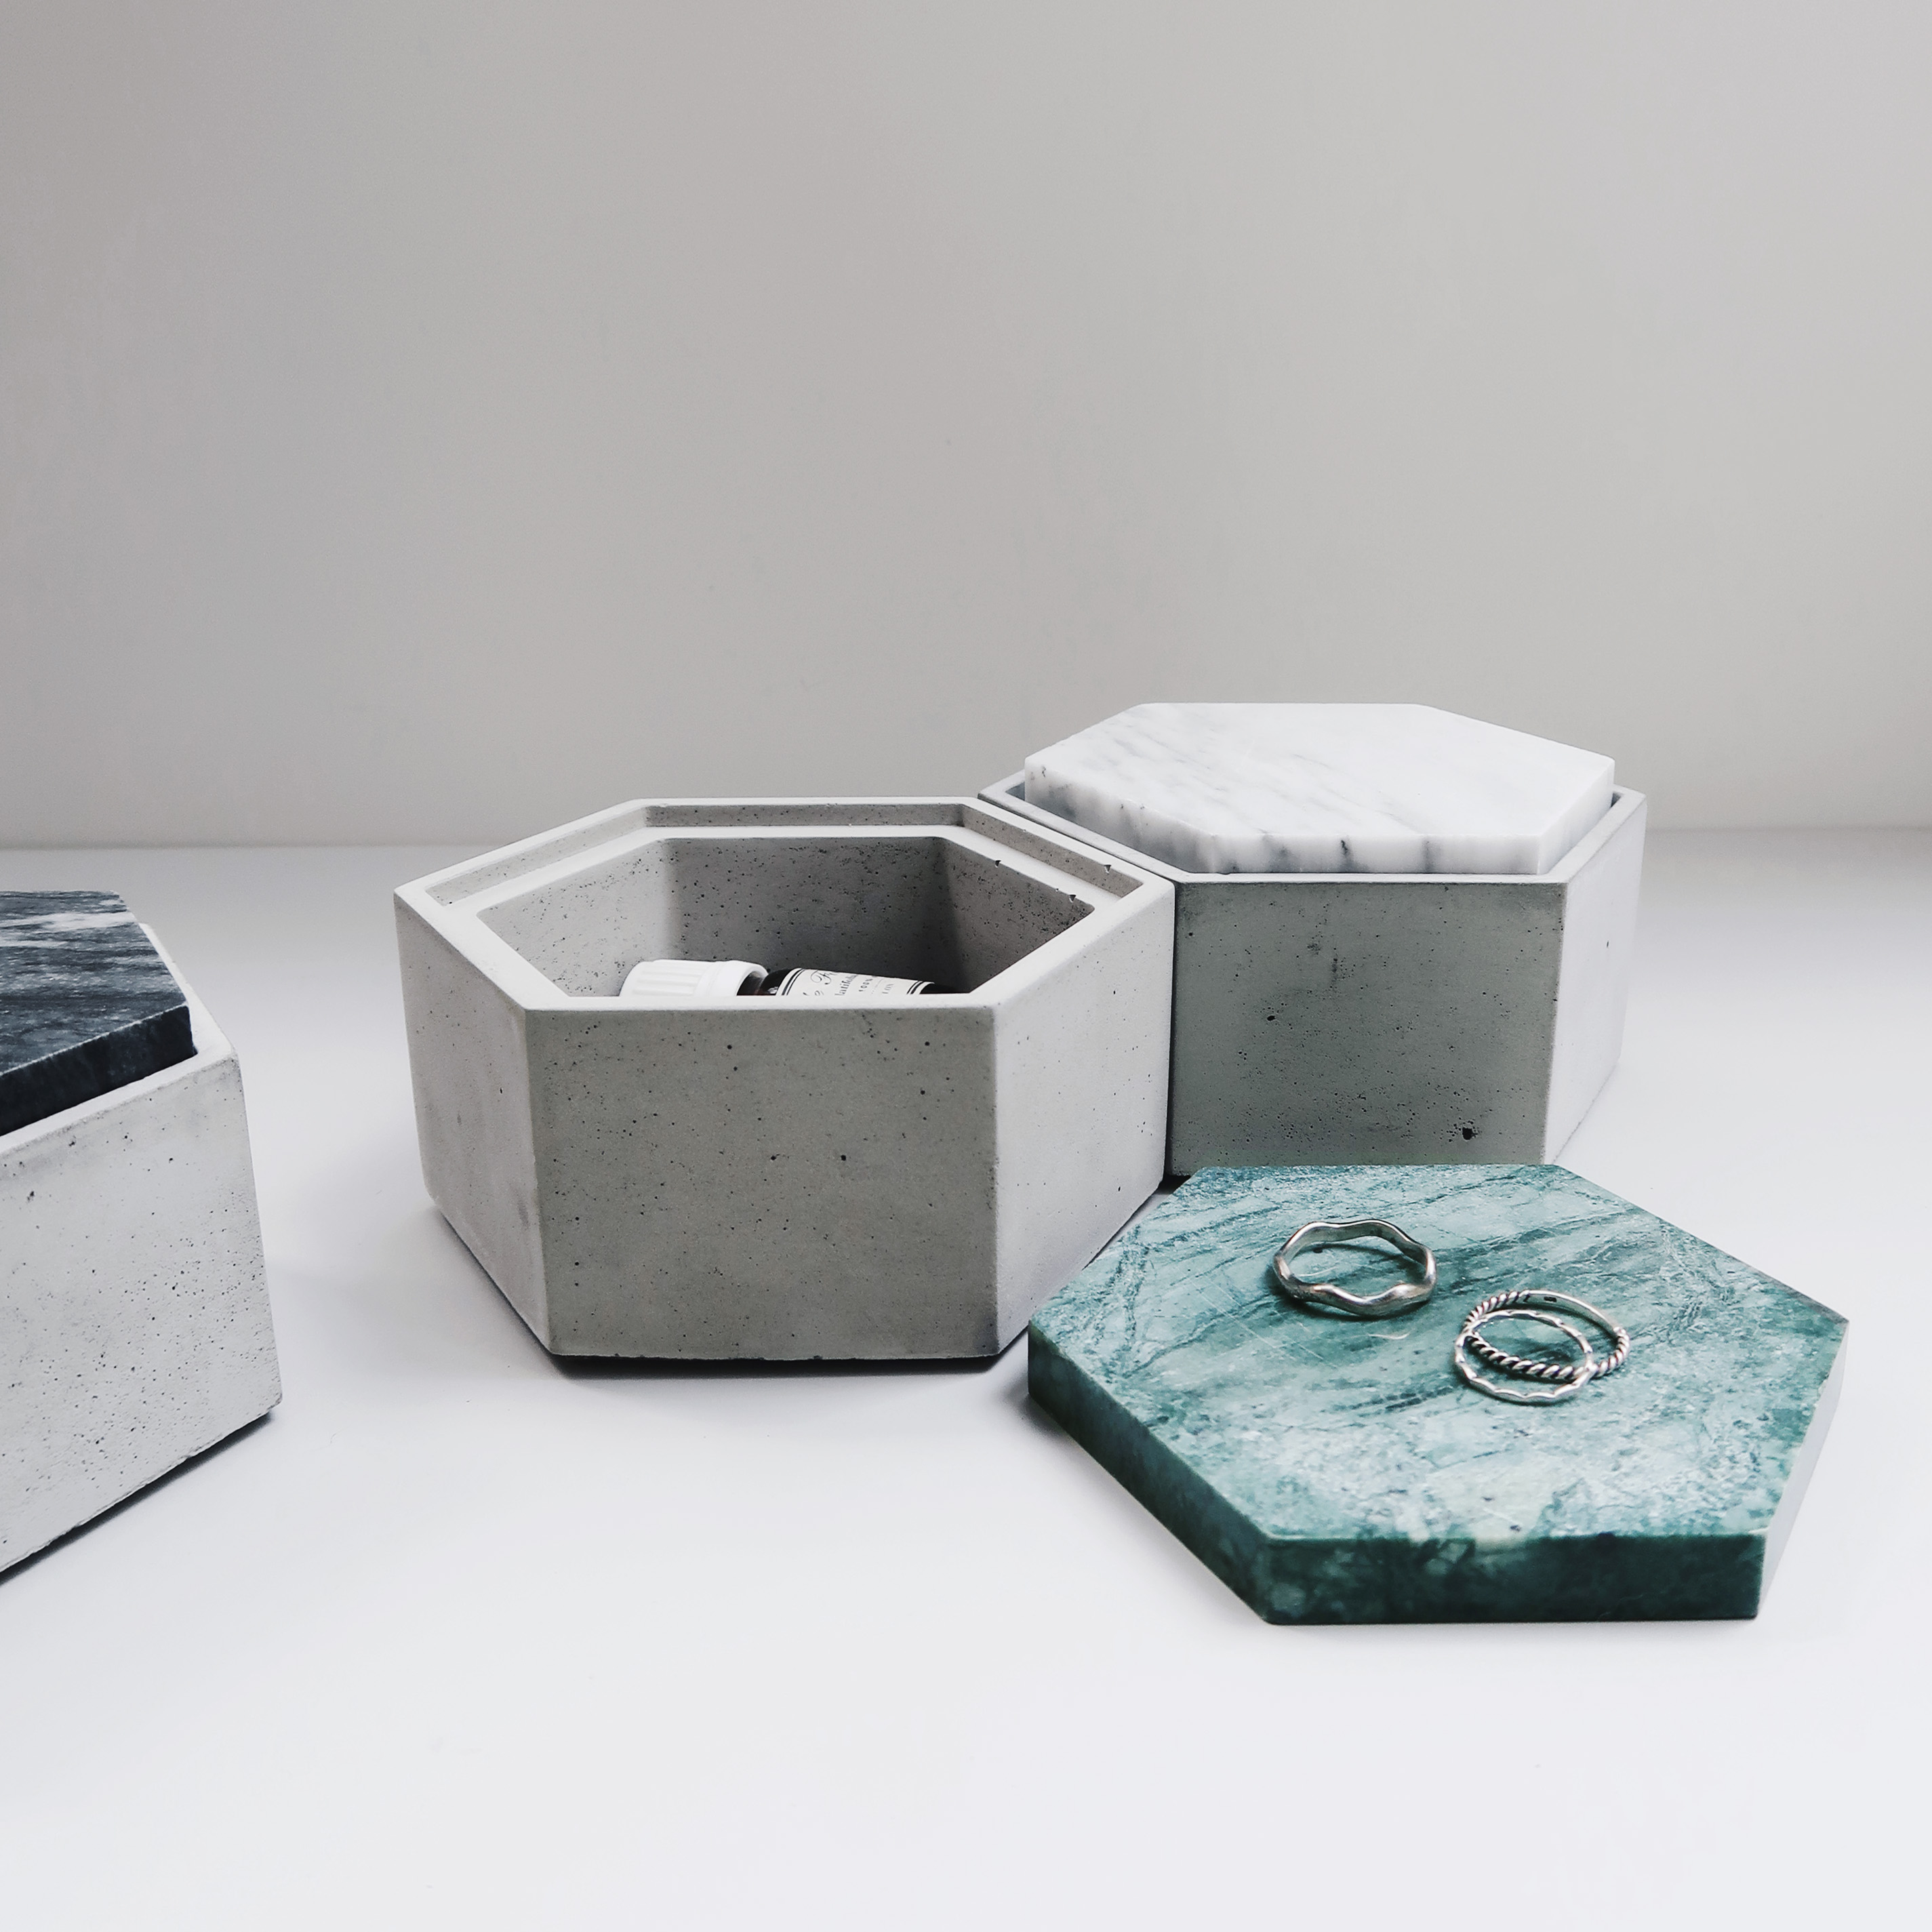 THE ROCK 雲岩六角大理石蓋水泥收納皿 / Hexagonal concrete box with marble lid